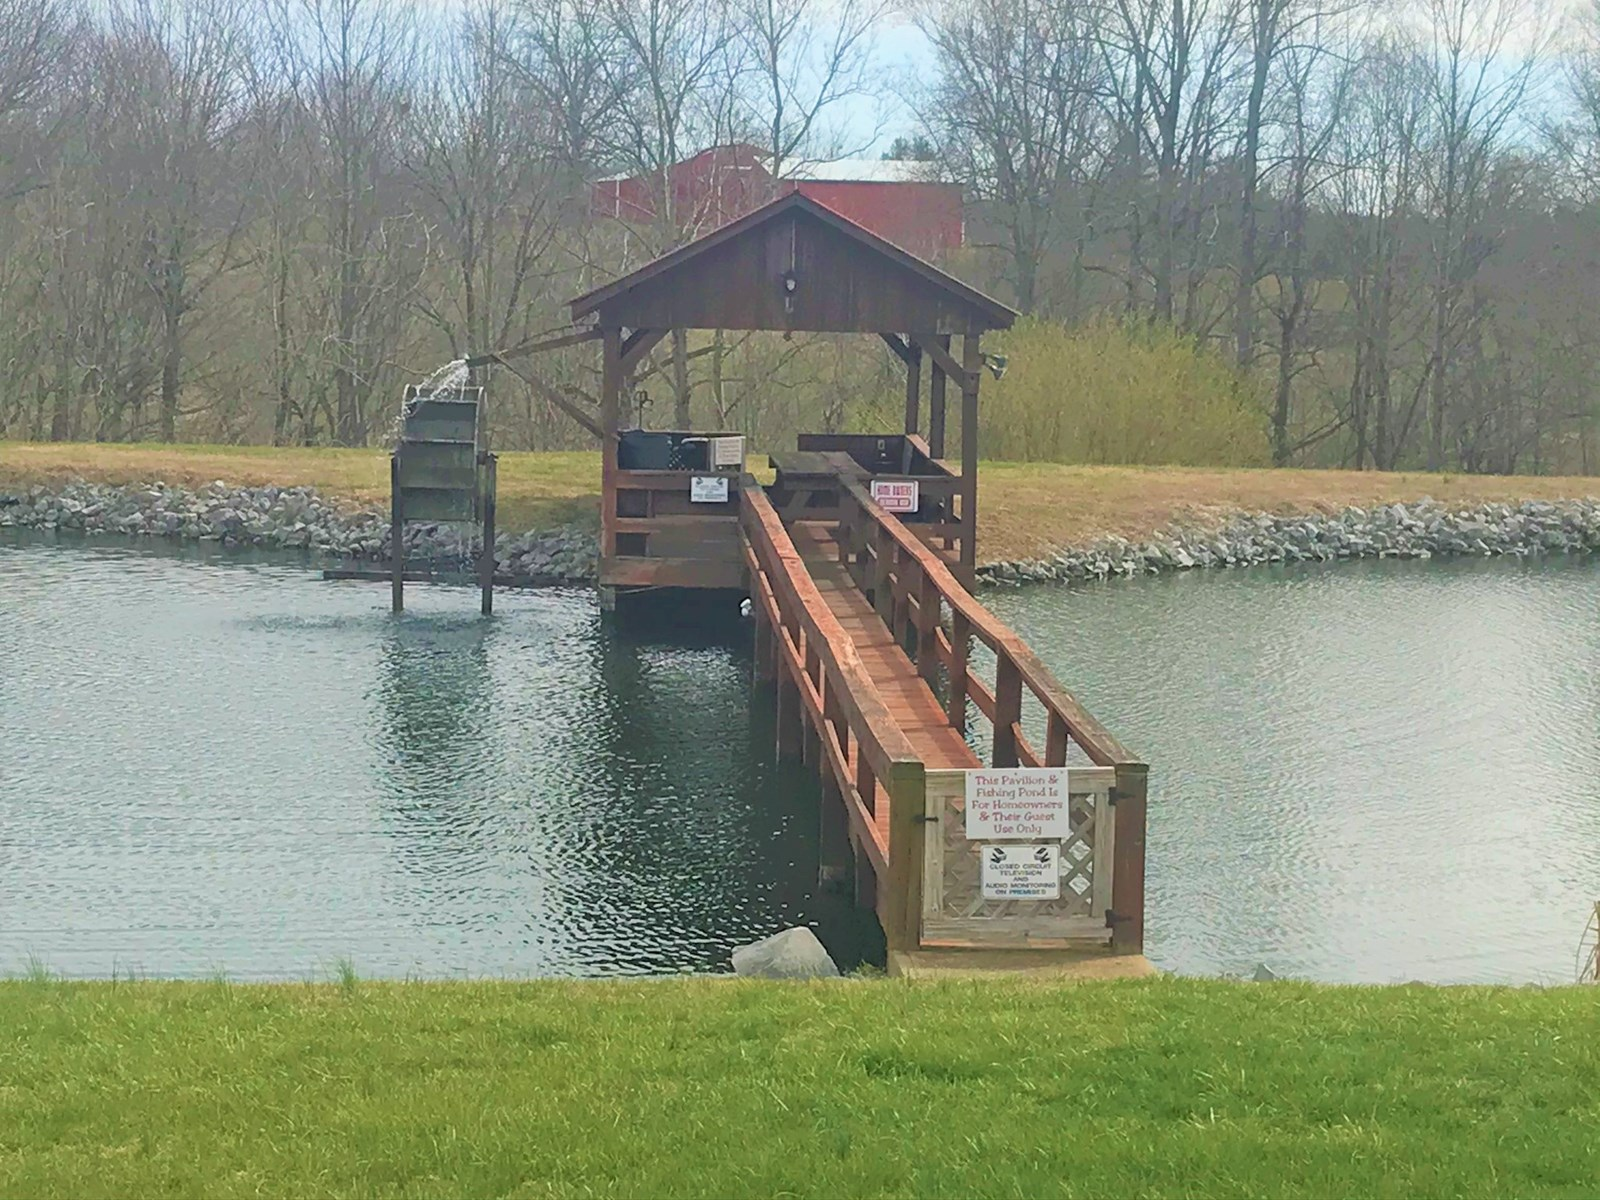 Lake Lot for sale in Barren County KY.  .61 acres